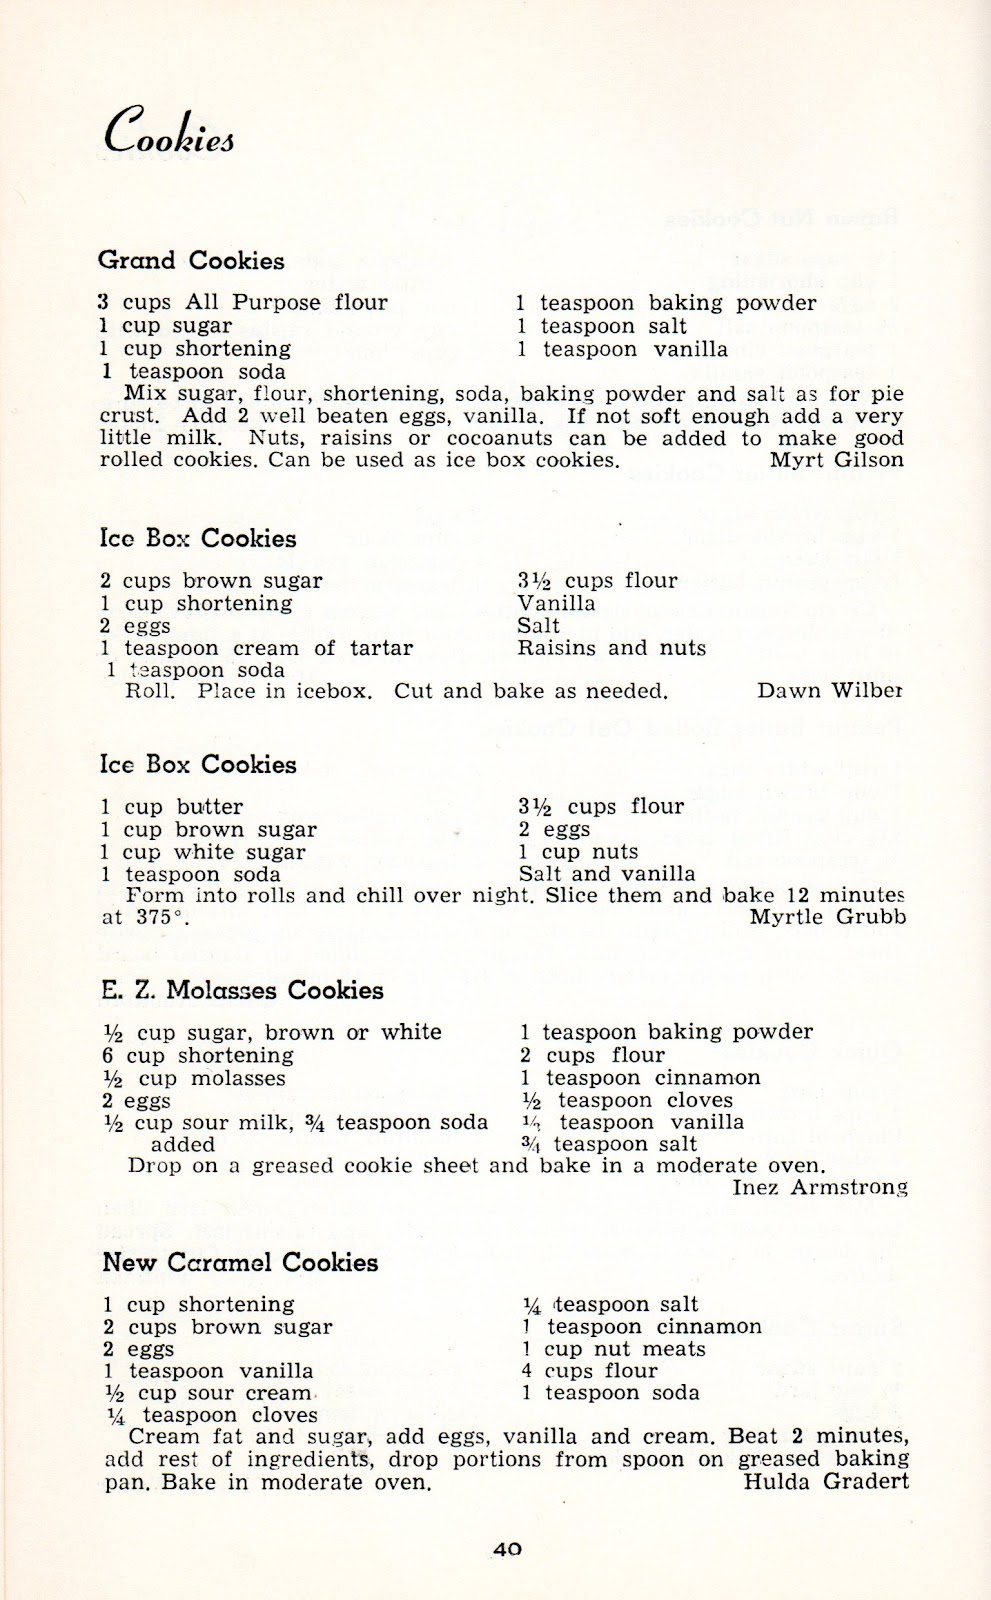 Food friday cookie recipes from the mothers of world war ii food food friday cookie recipes from the mothers of world war ii forumfinder Image collections